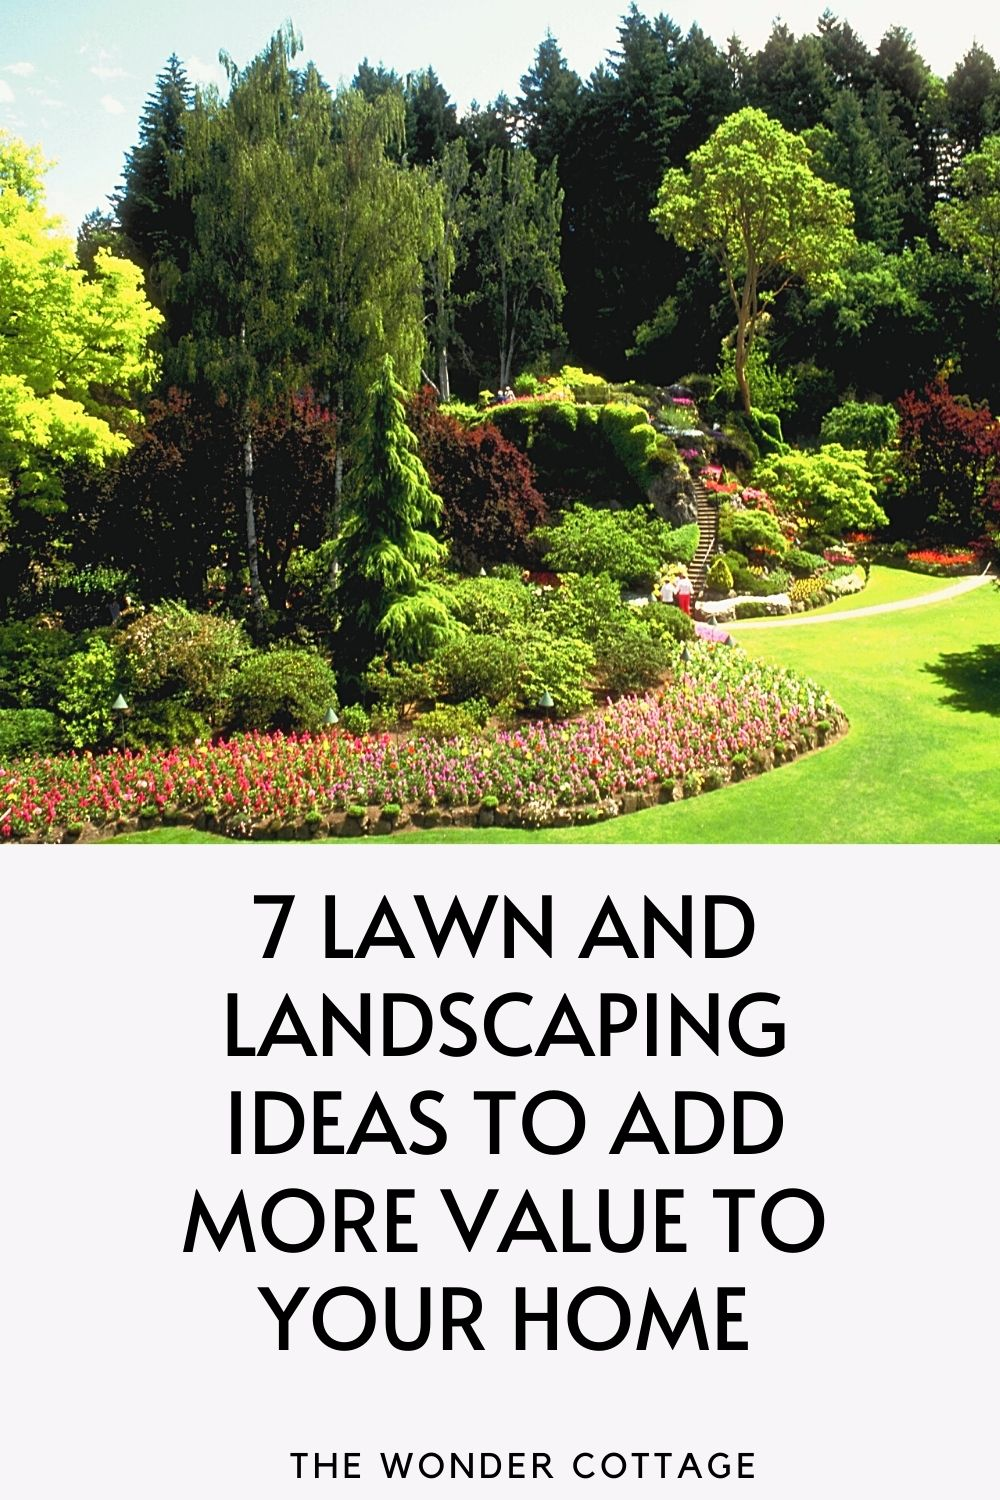 7 Lawn And Landscaping Ideas To Add More Value To Your Home